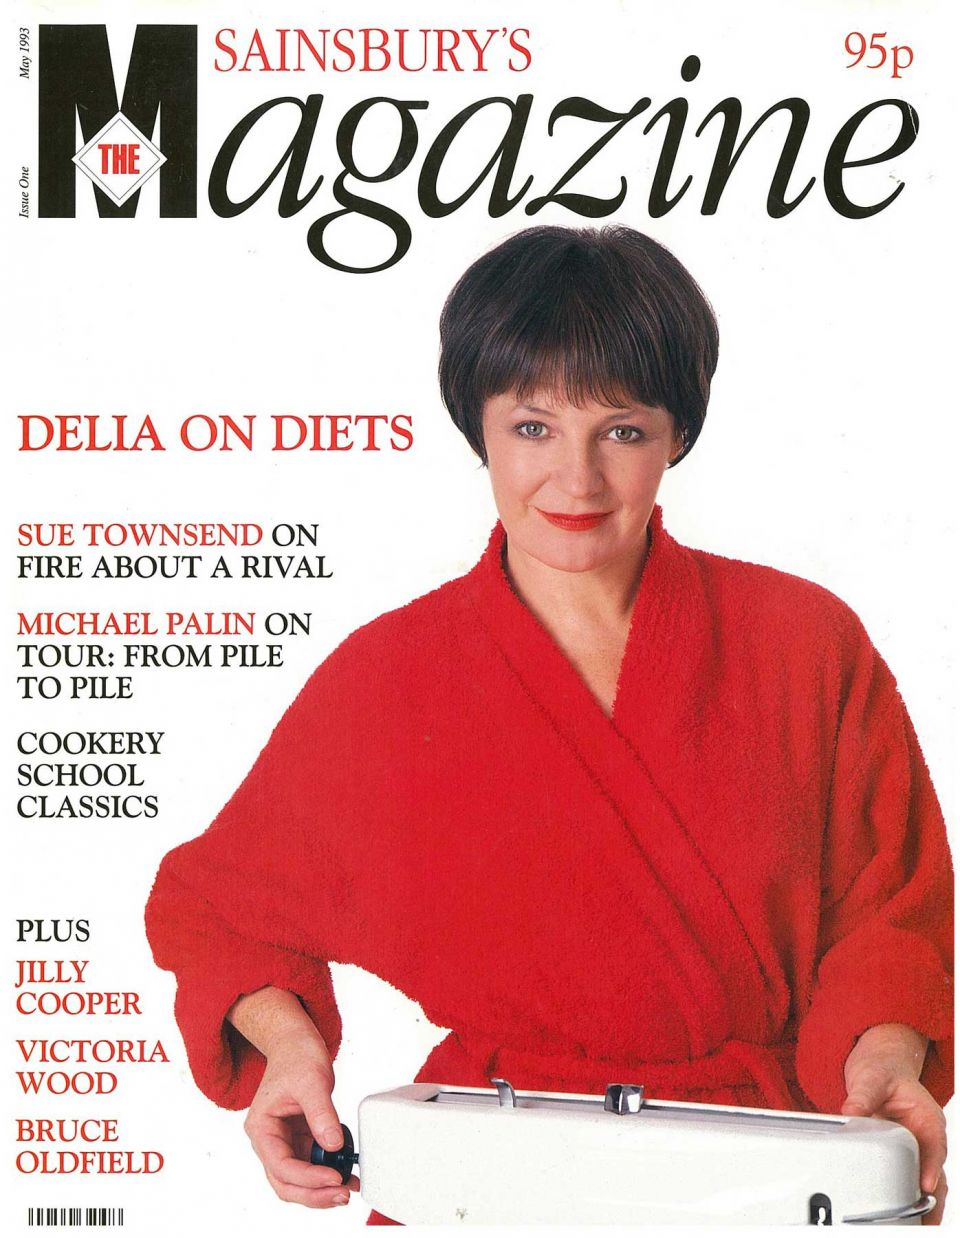 The first issue of Sainsbury's magazine